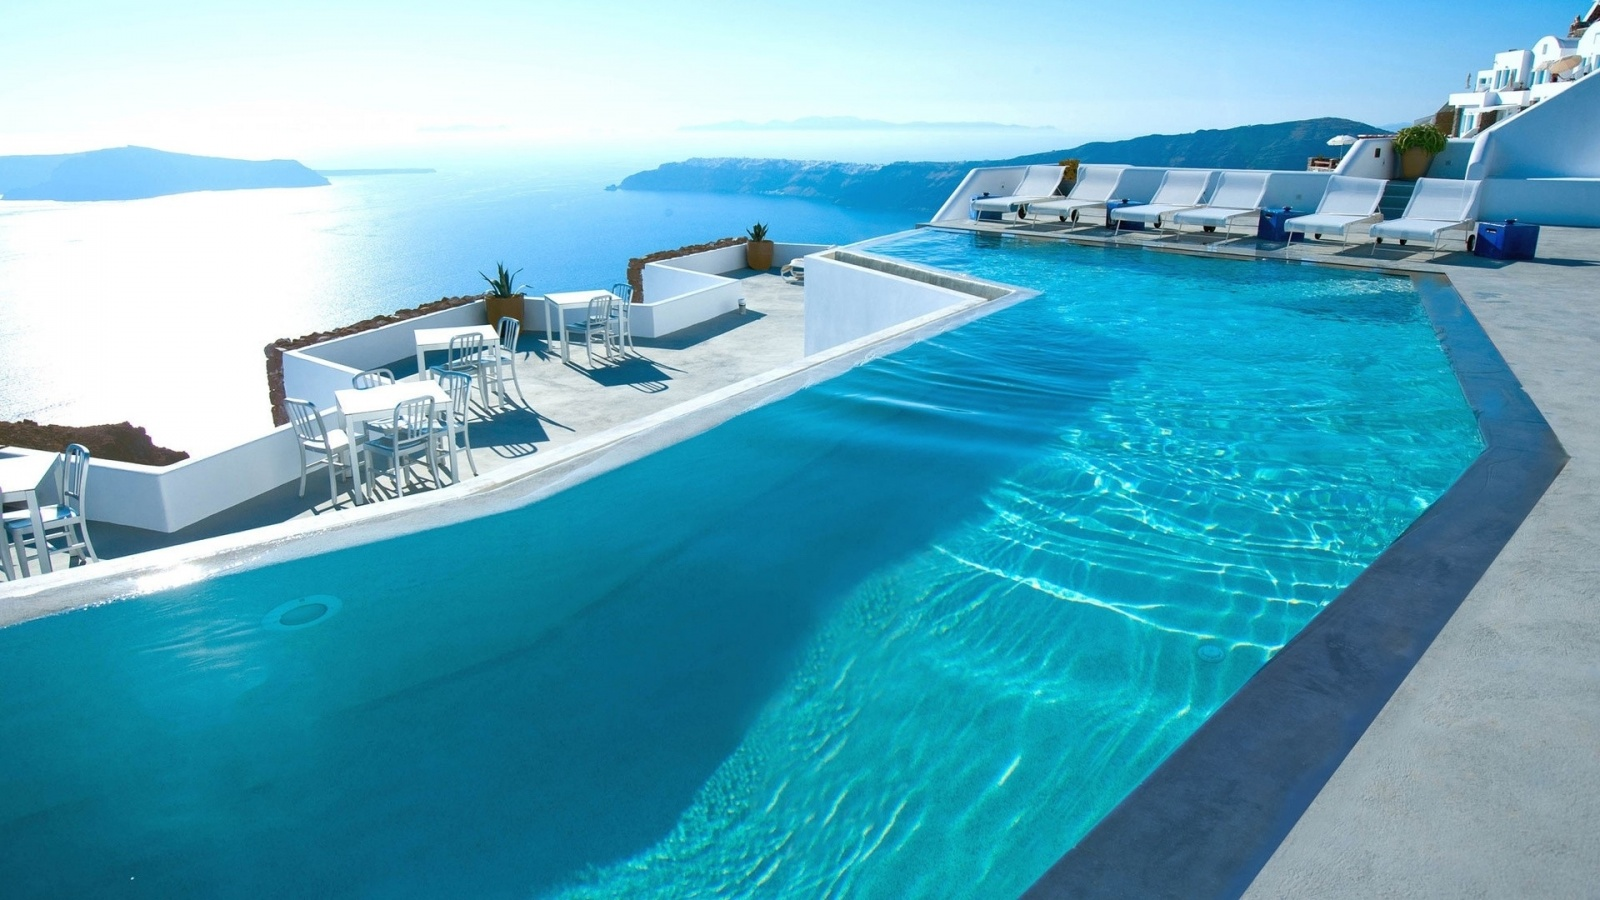 Description: The Wallpaper above is Swimming pool santorini Wallpaper in Resolution 1600x900. Choose your Resolution and Download Swimming pool santorini ...